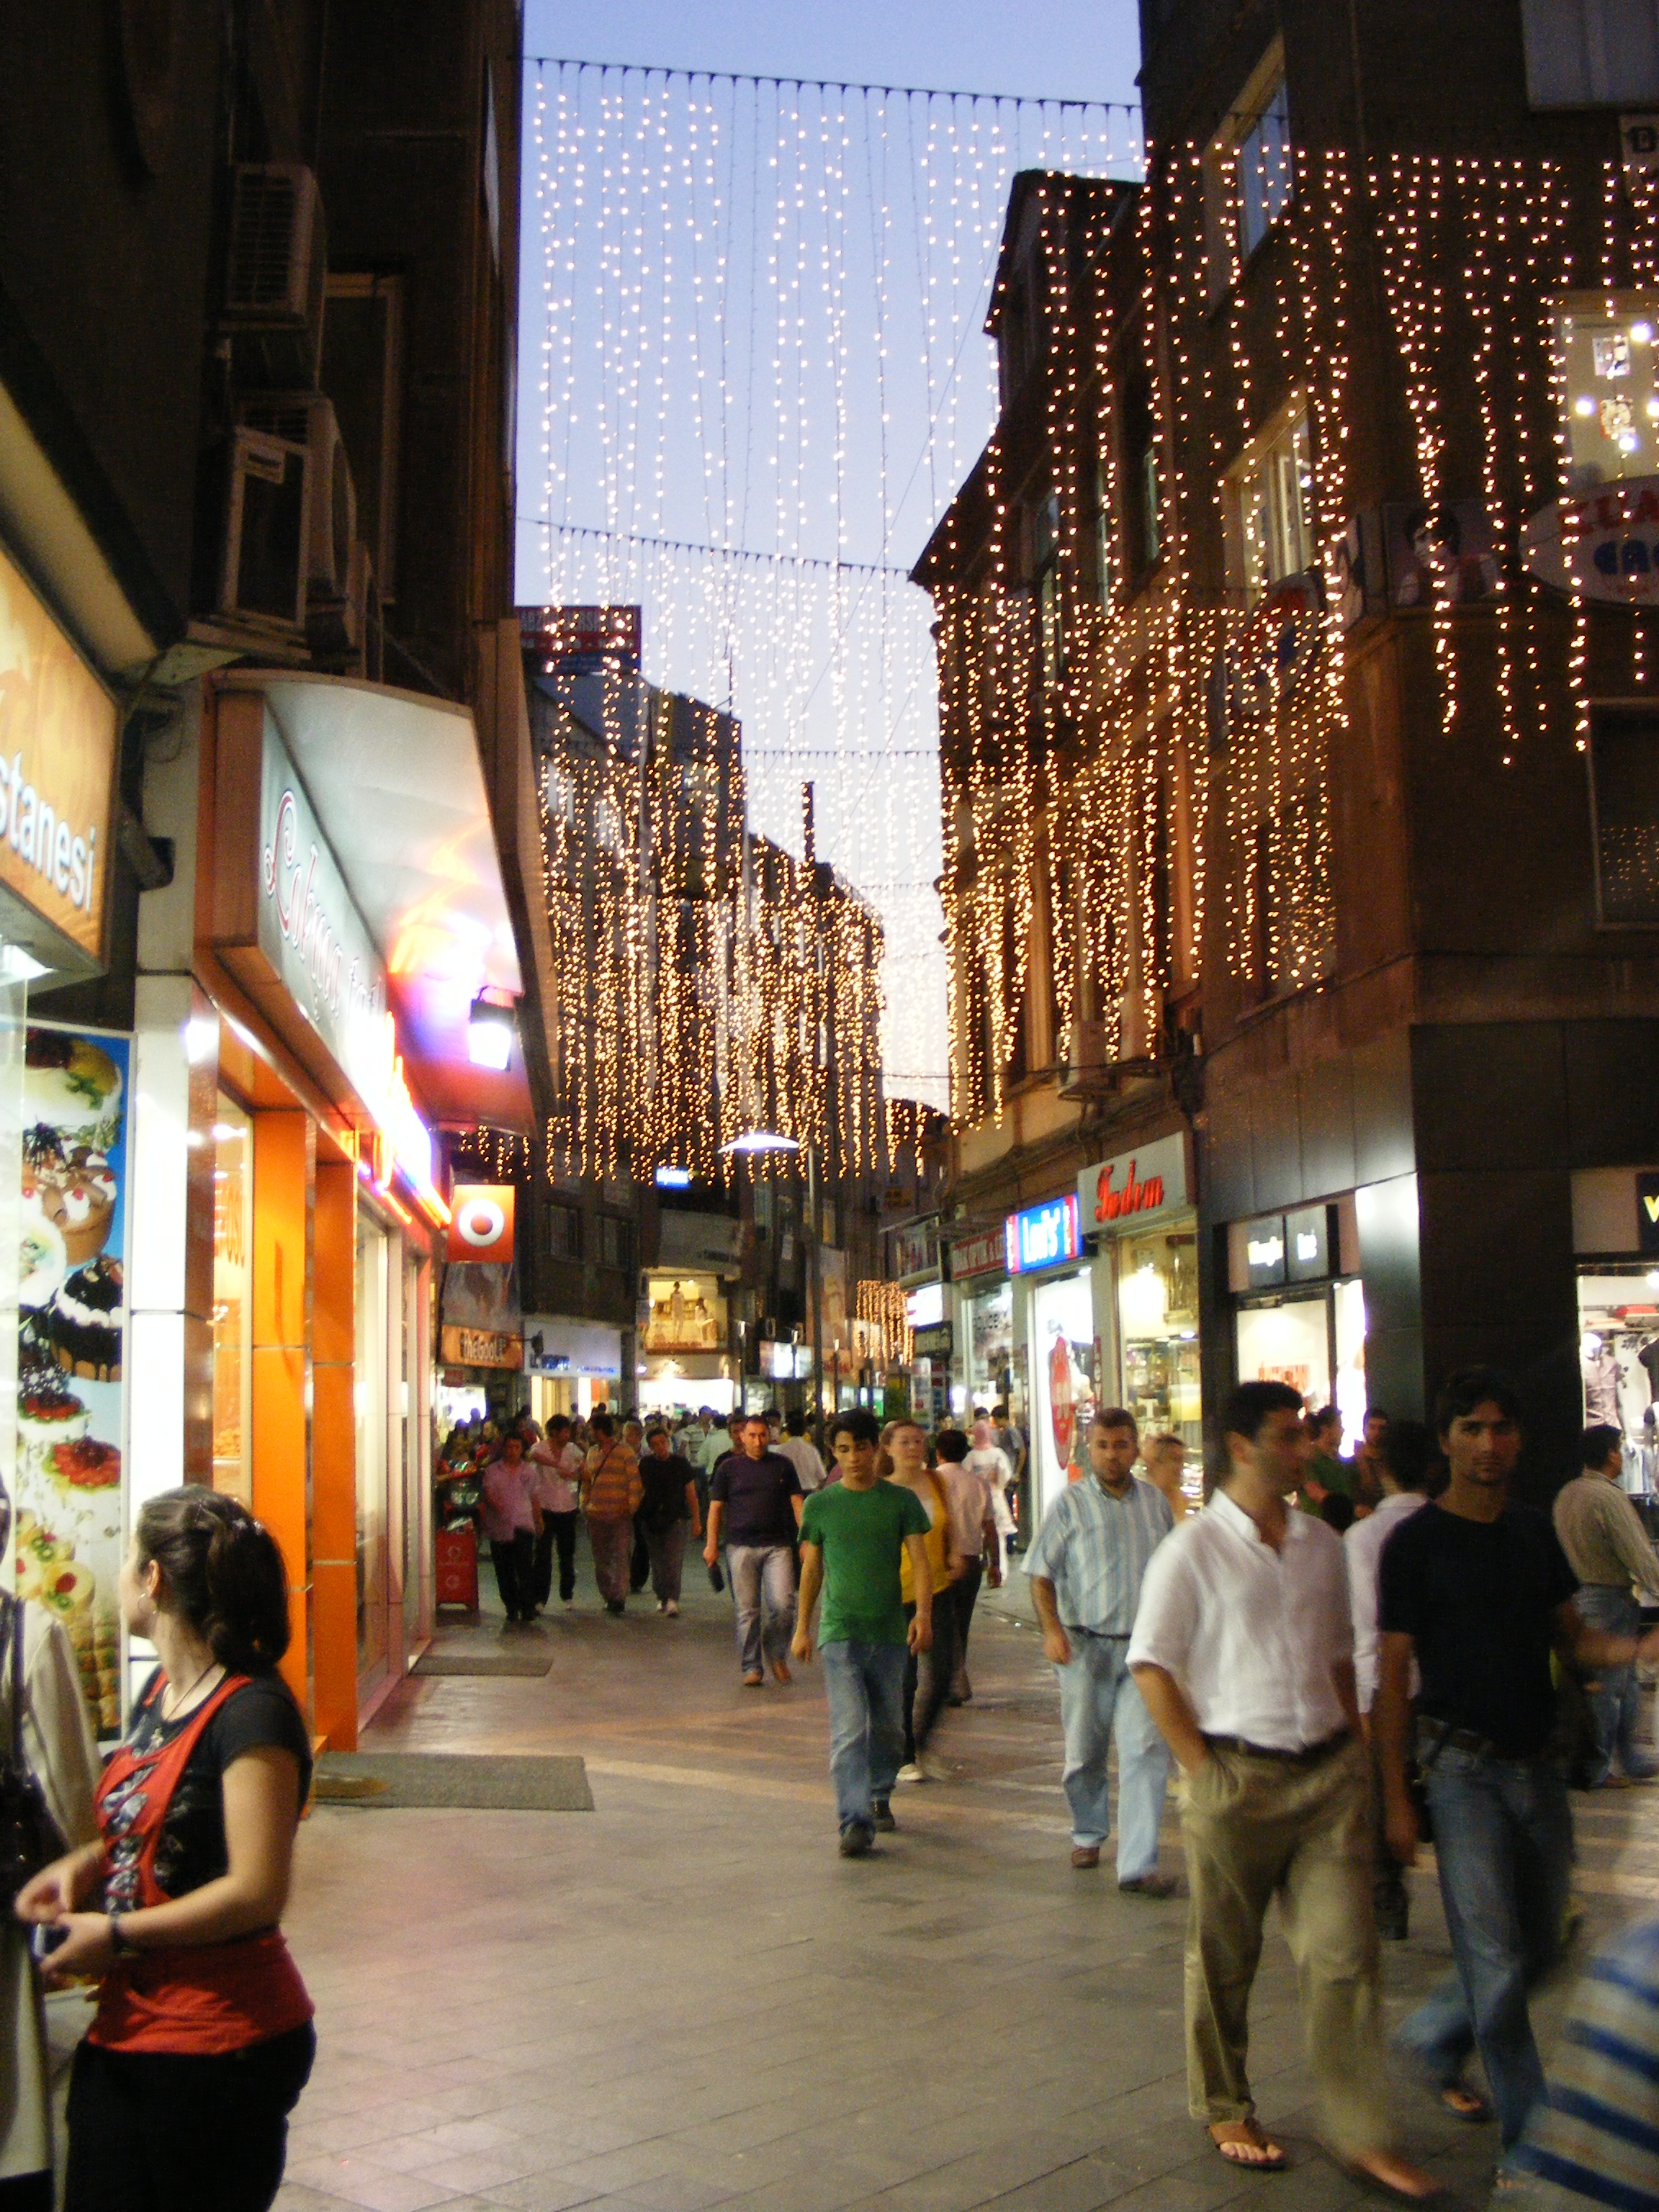 Description uzun sokak at night